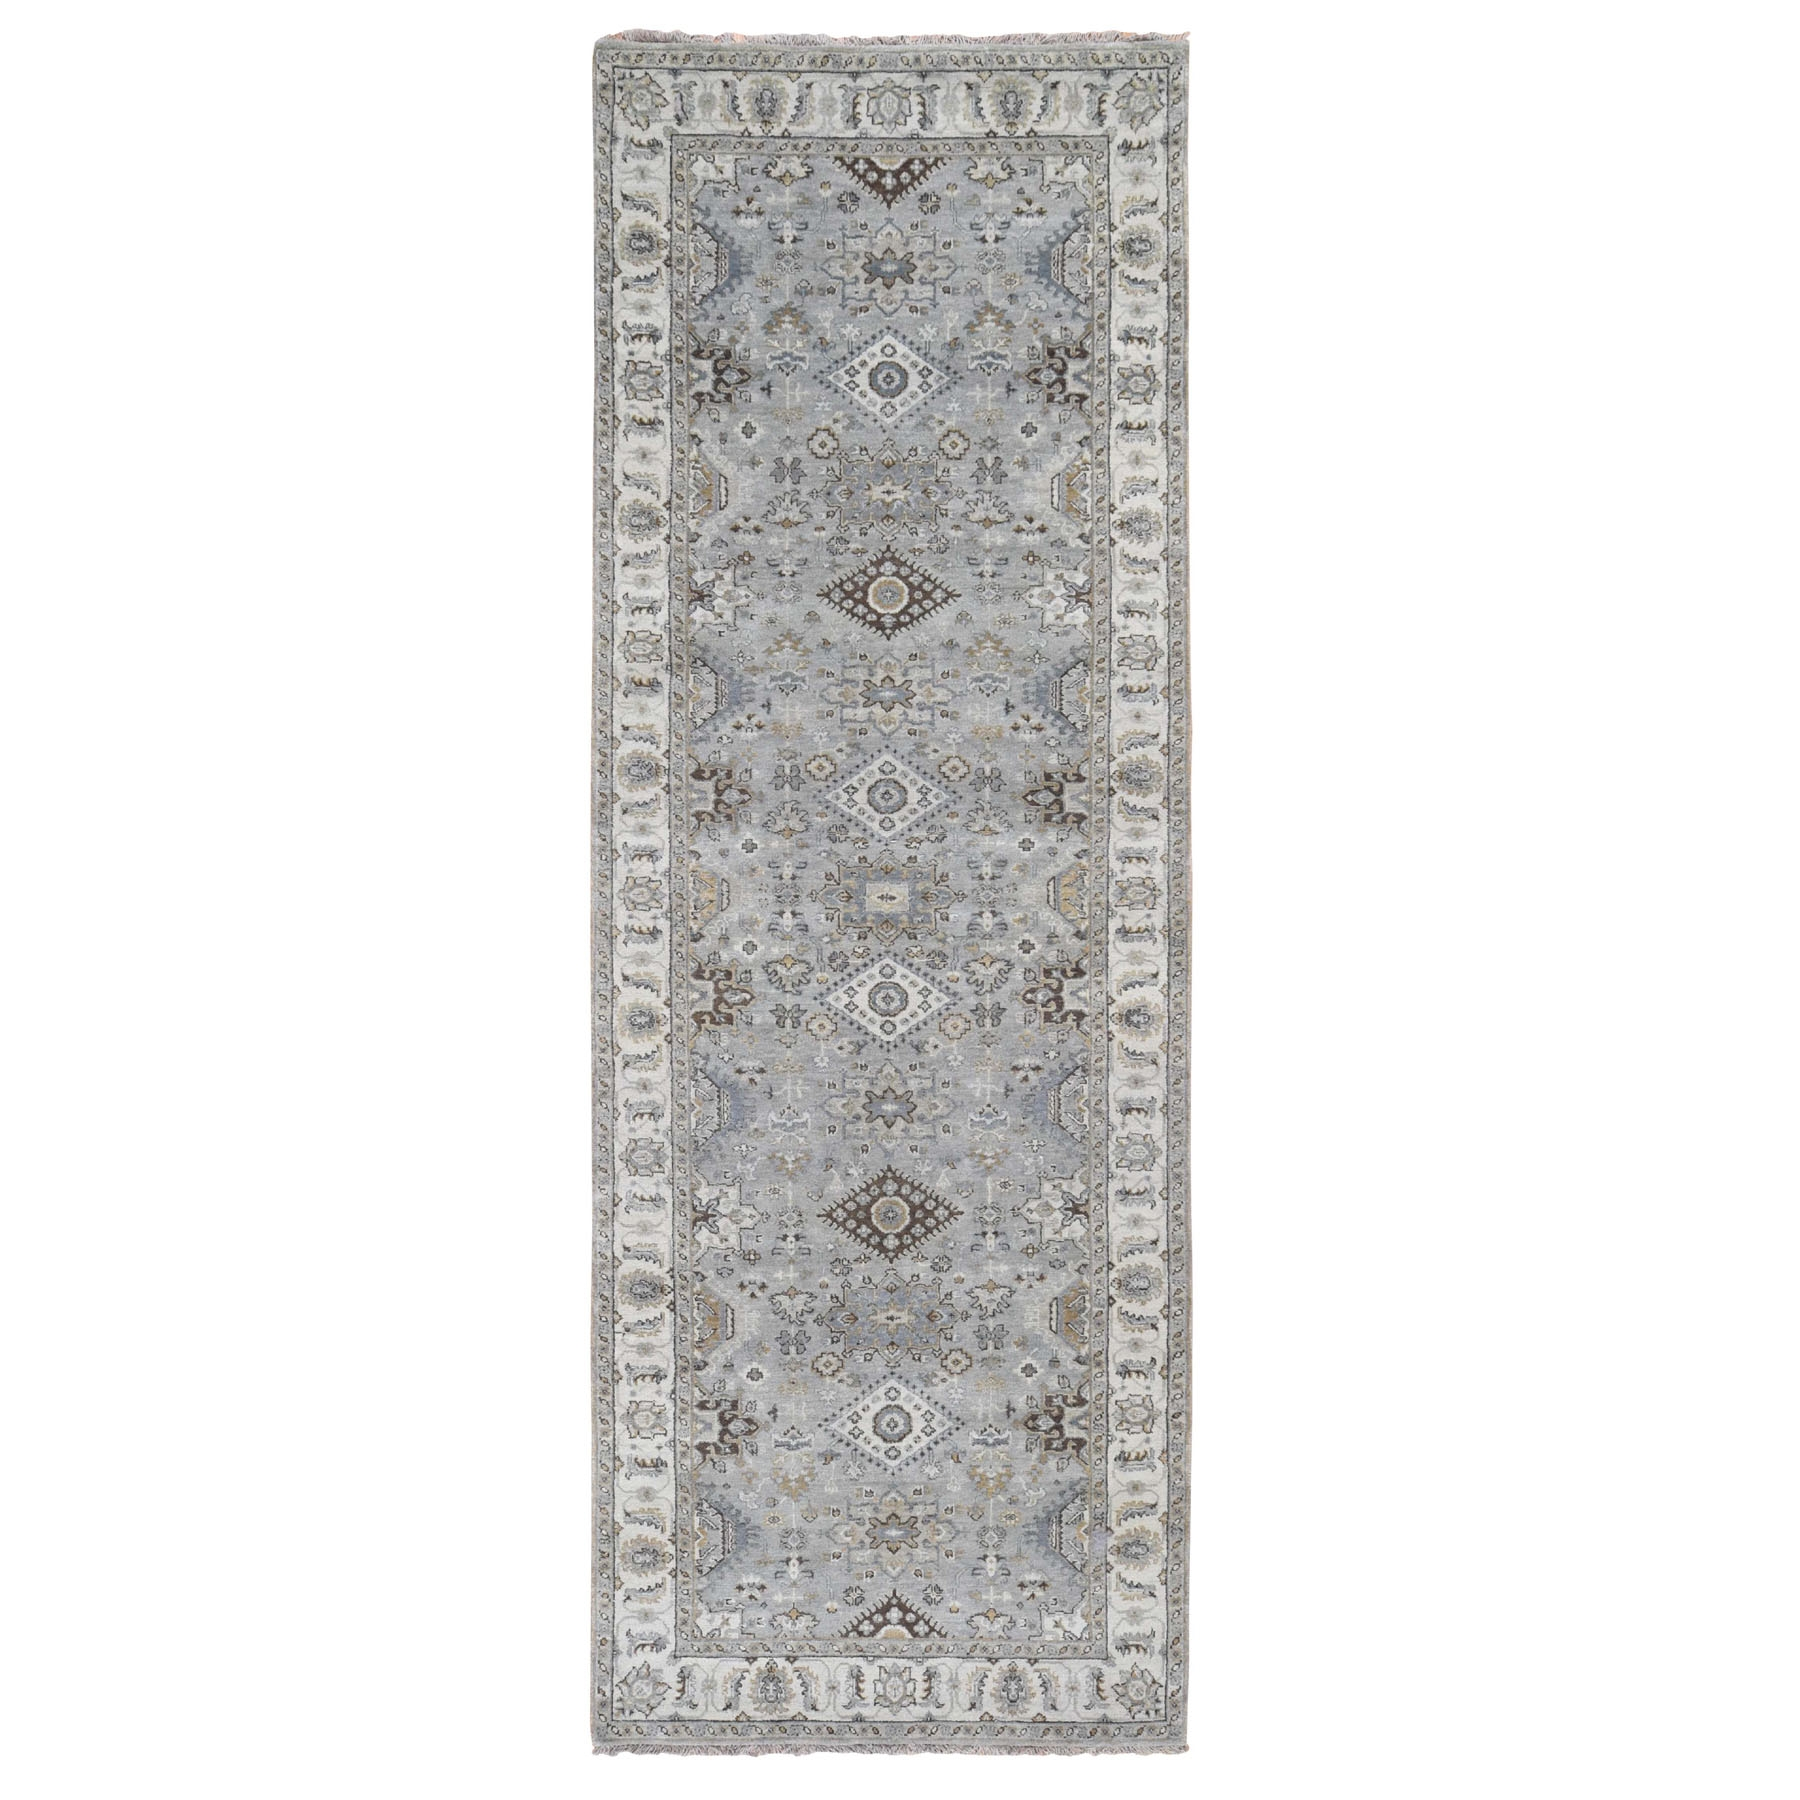 """4'2""""X11'9"""" Gray Karajeh Design Pure Wool Hand Knotted Wide Runner Oriental Rug moad89ed"""